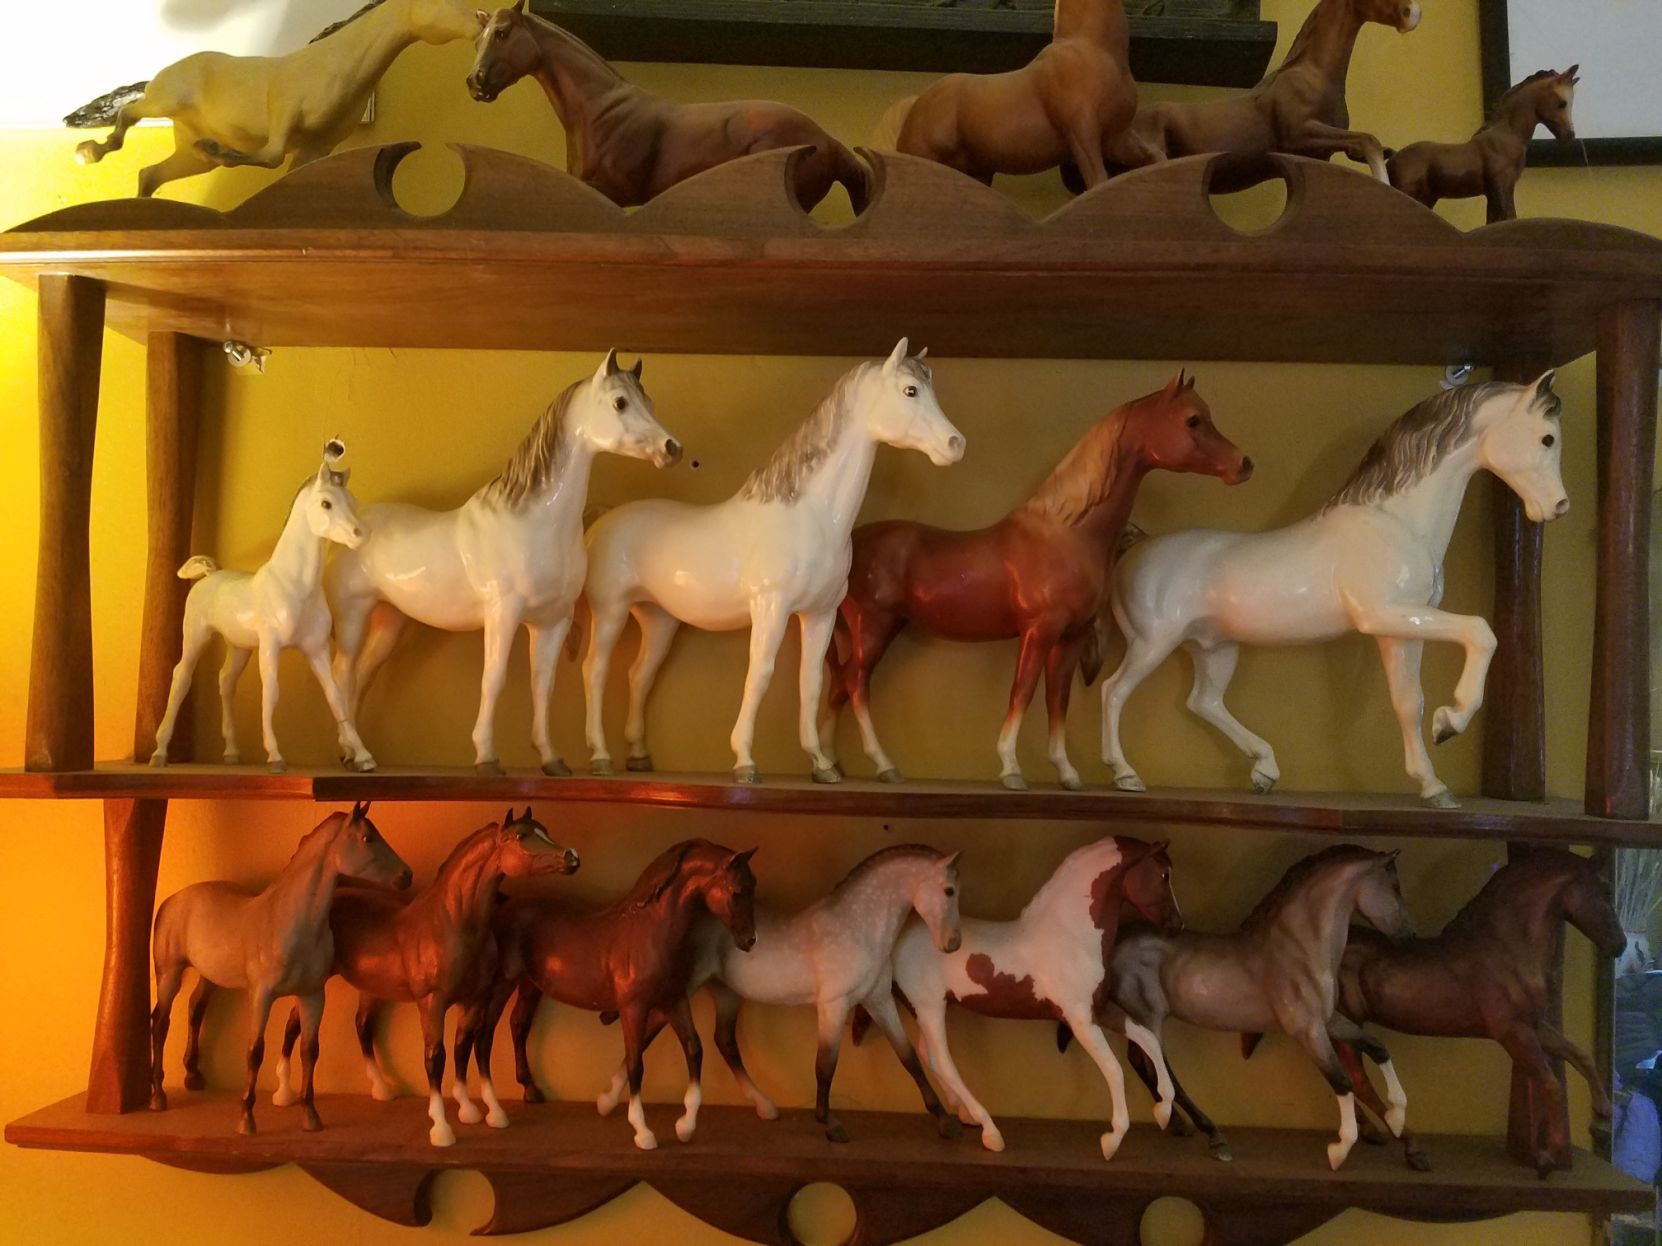 She Has 200 Horses In Her House Breyer Fanatics Stay Young Through Their Model Equine Collections Inspired Living Omaha Com